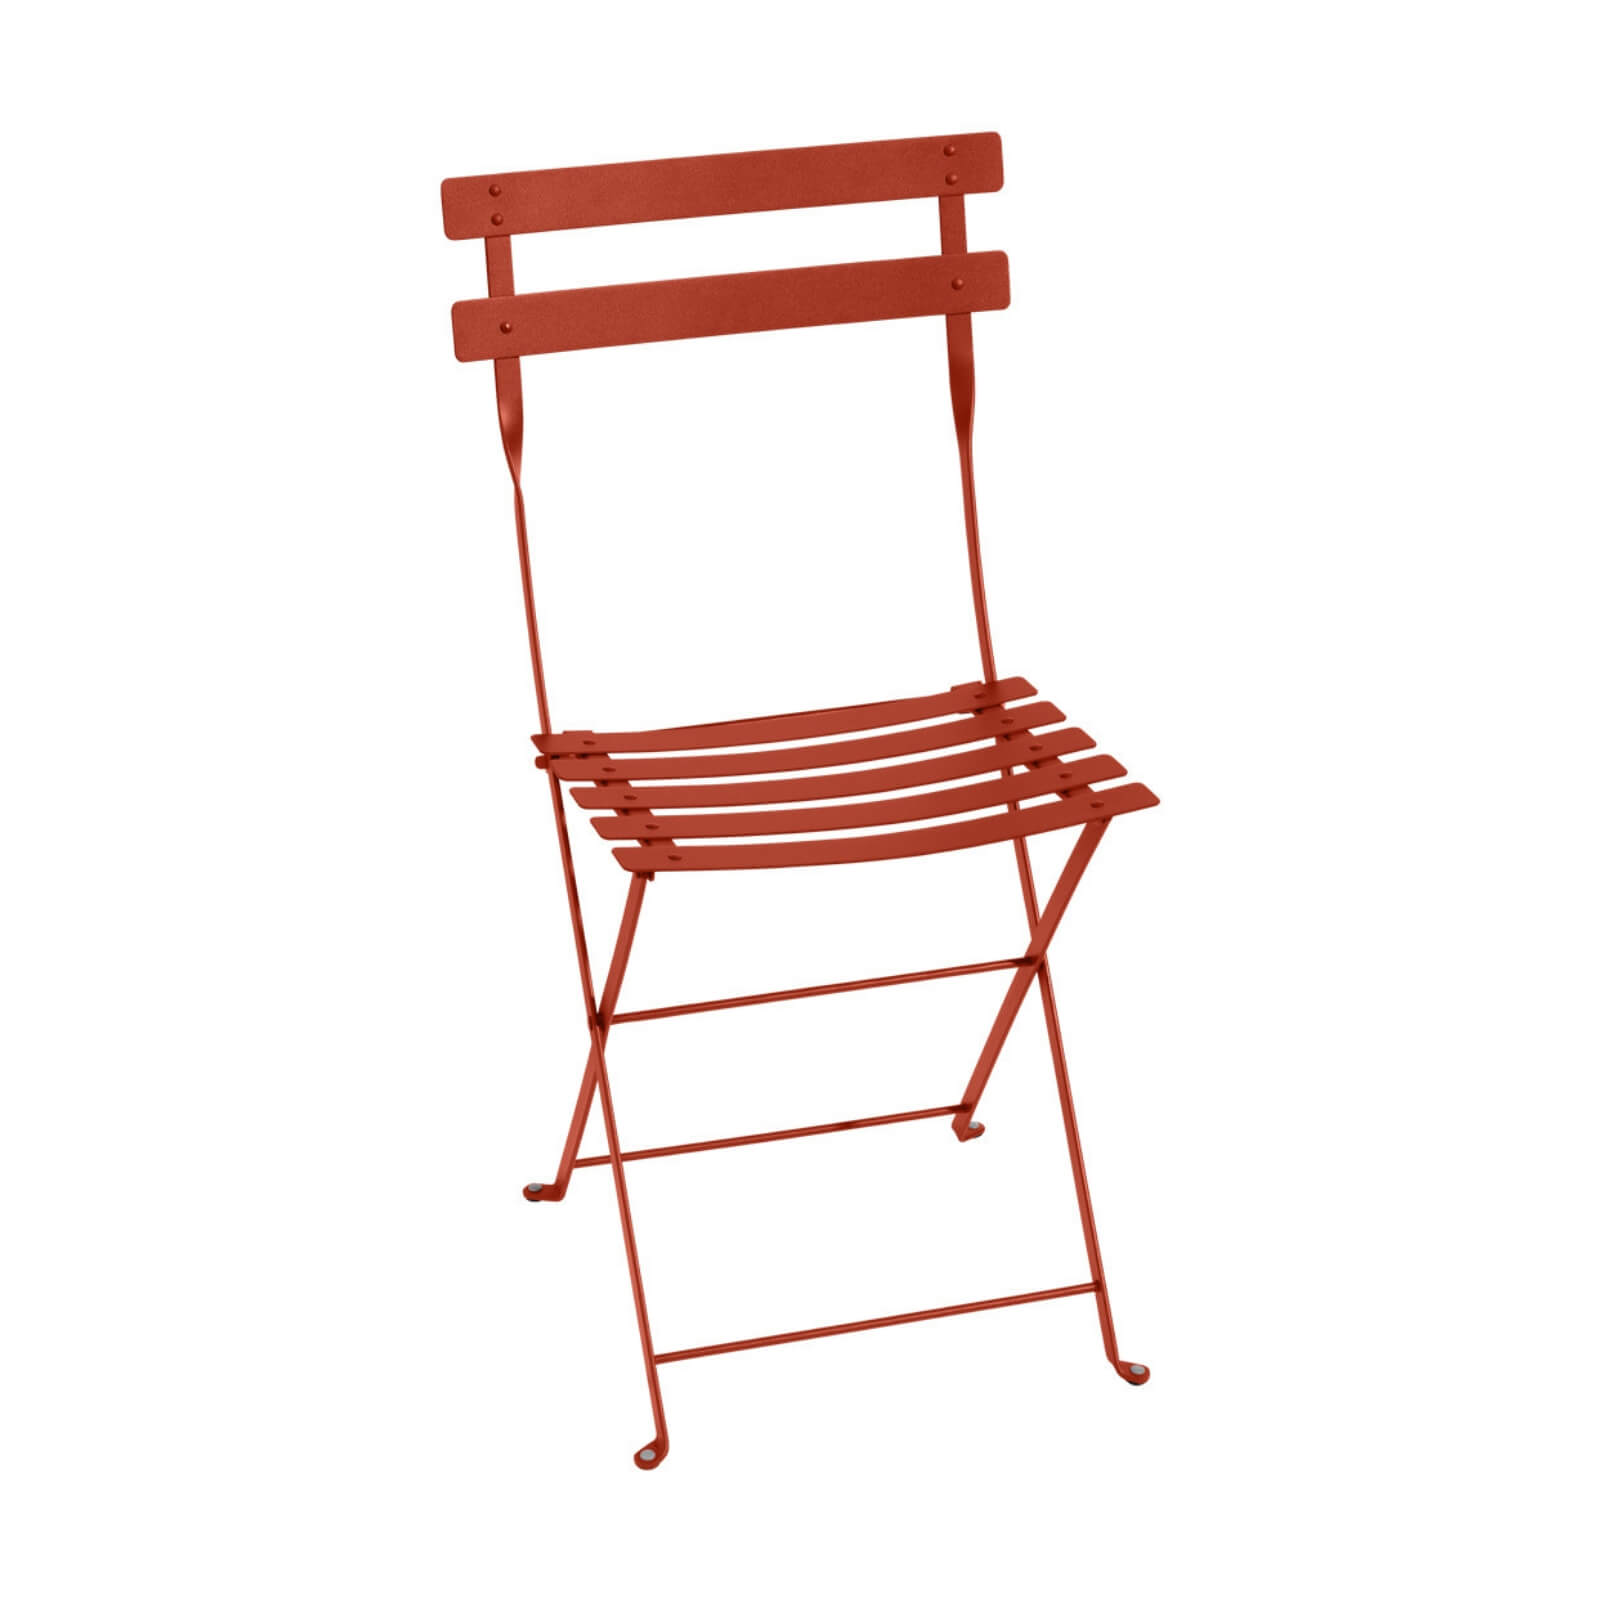 Two Design Lovers Fermob Bistro chair in paprika